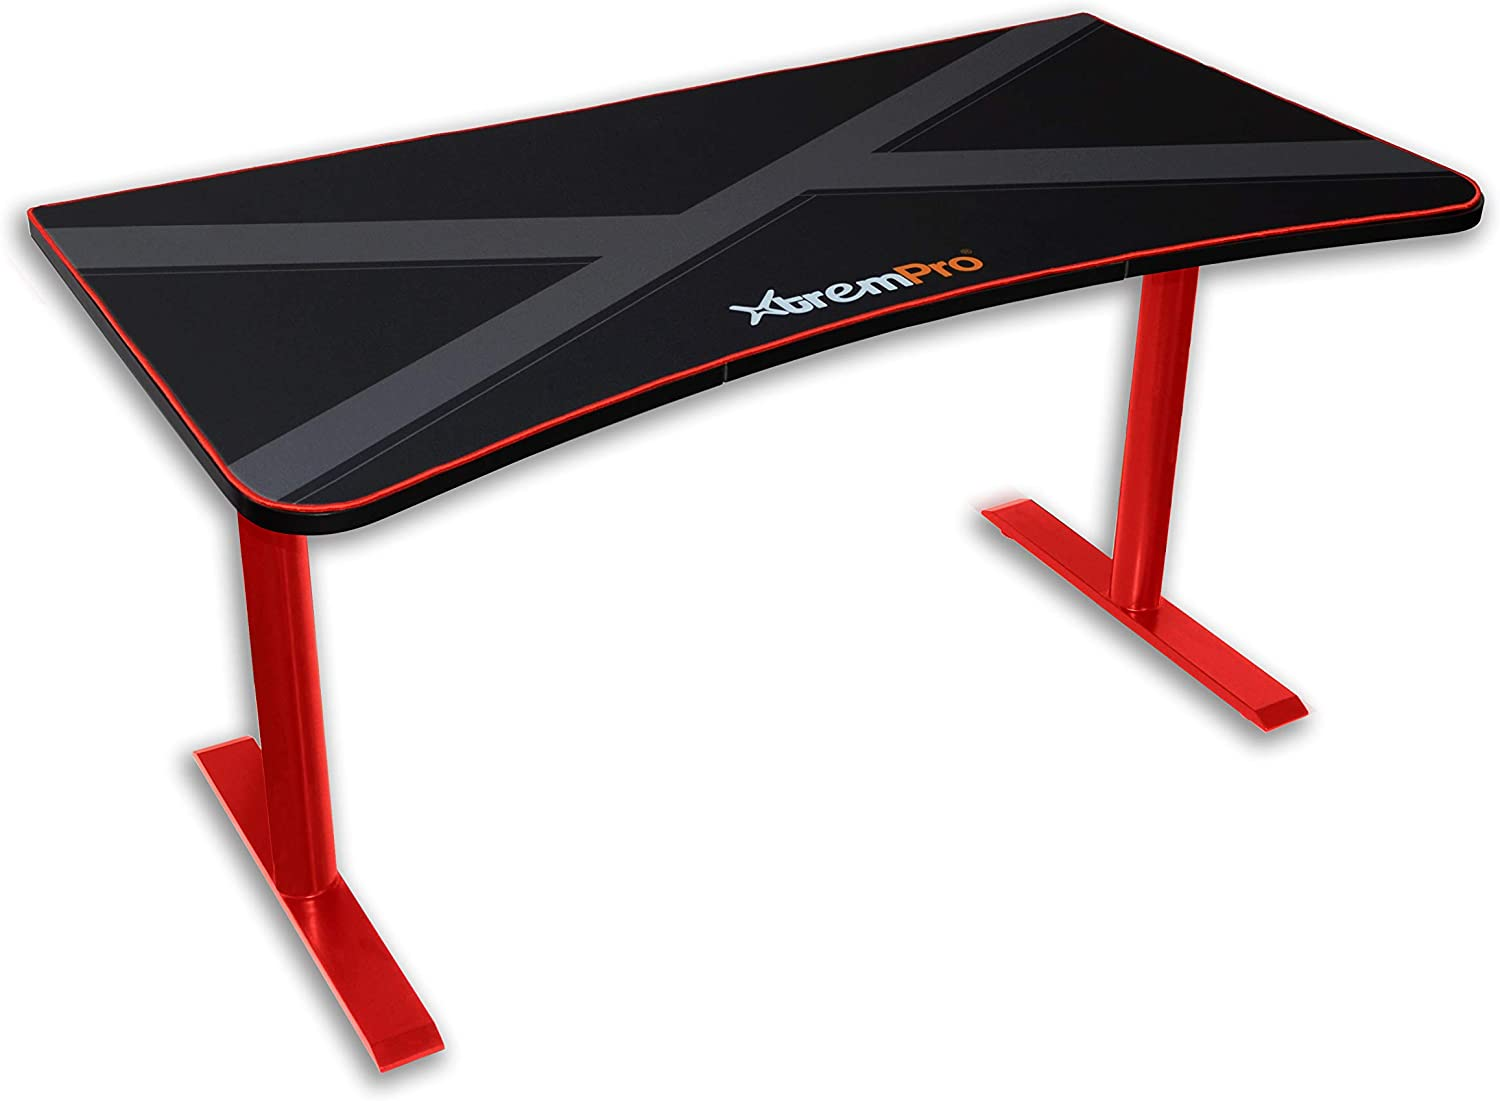 XtremPro 11161 Gaming Desk Huge Three Monitor Display Area Table Cable Management Full Mouse Pad Cover Black Red